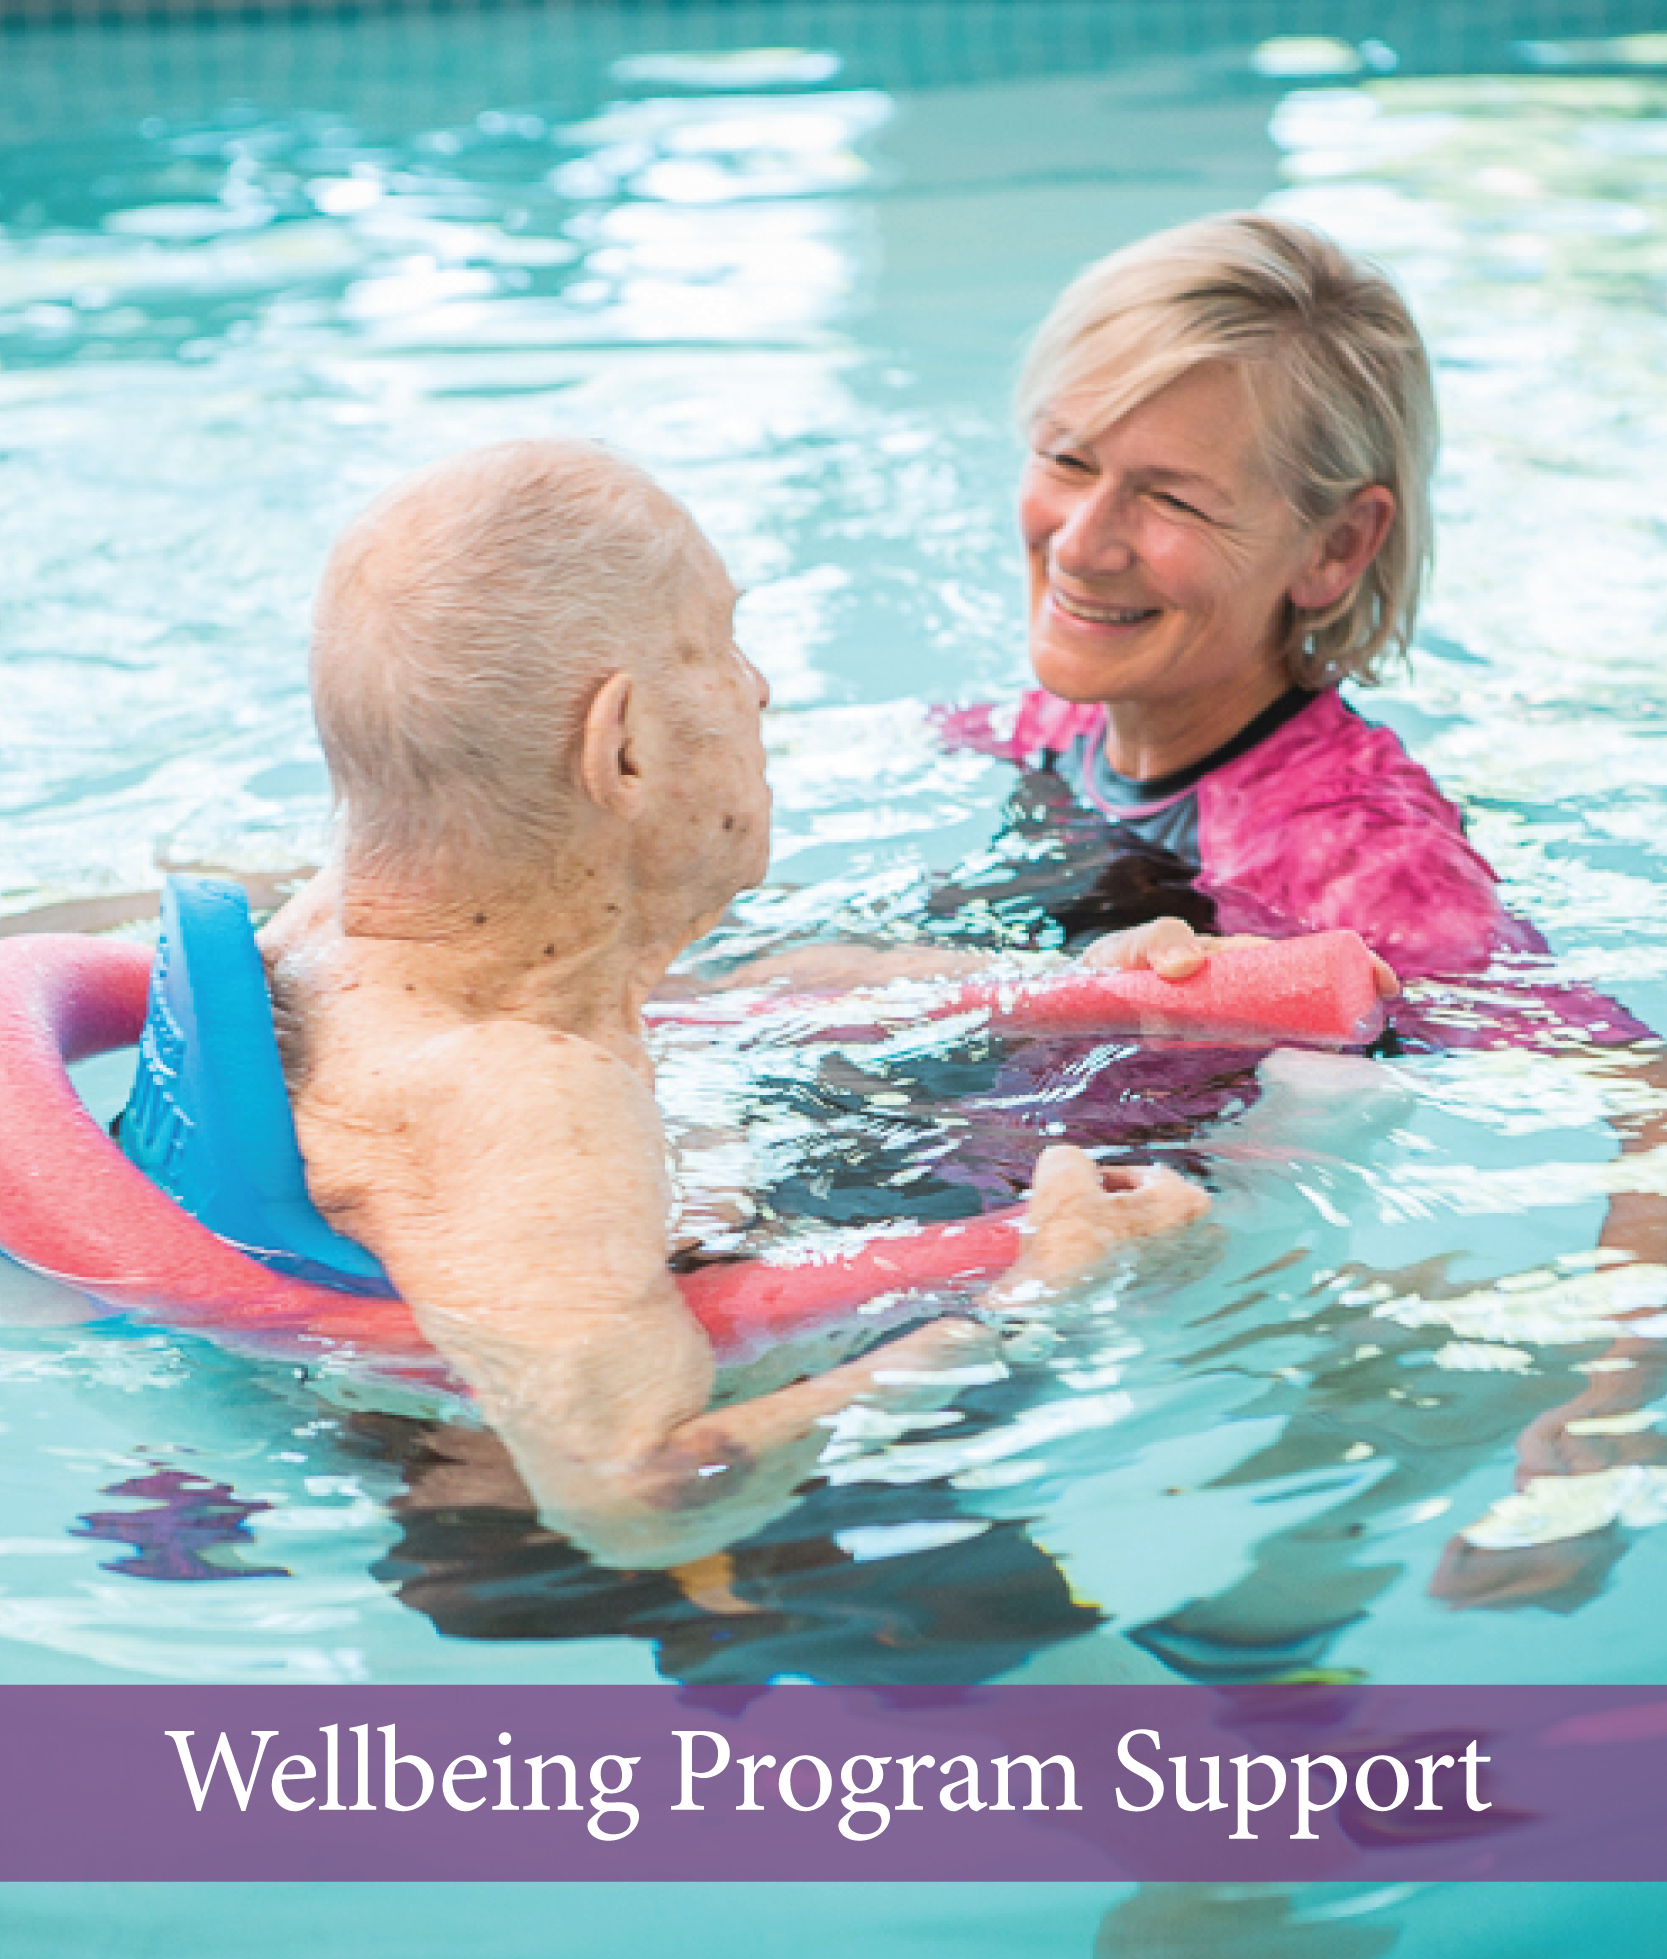 Episcopal home wellbeing program support